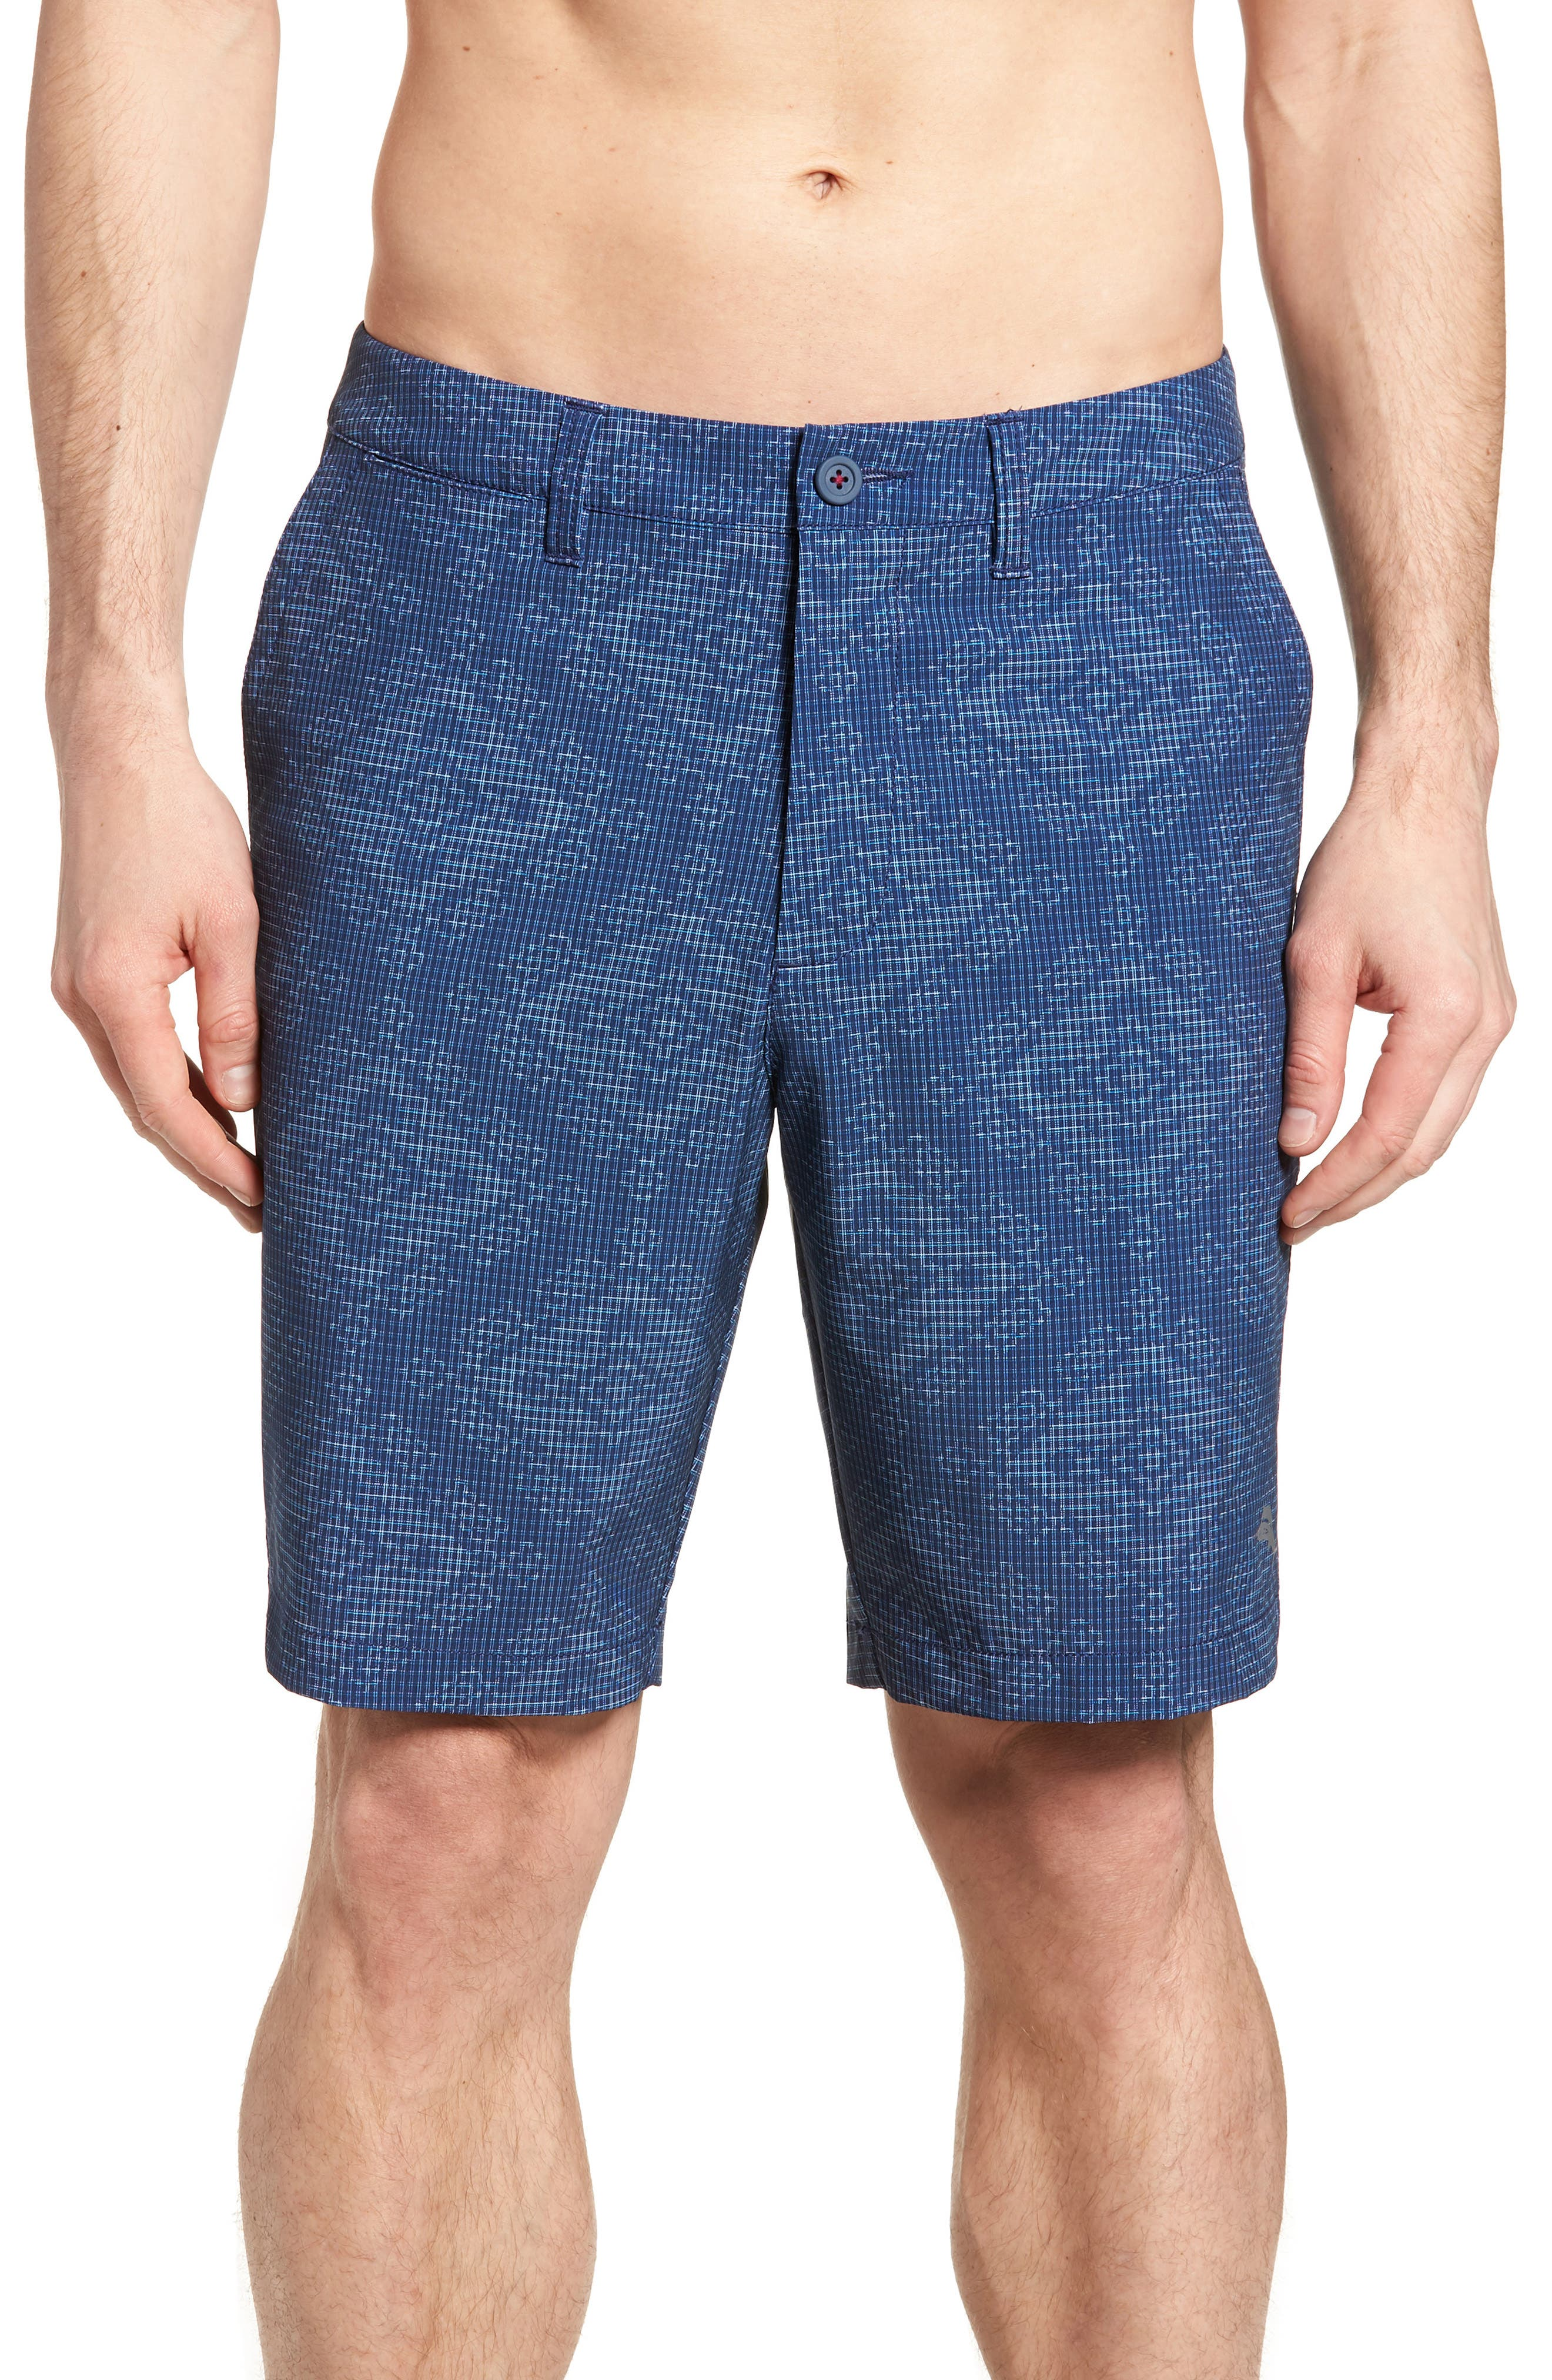 Bayman Geo De Mayo Hybrid Shorts,                         Main,                         color, THRONE BLUE